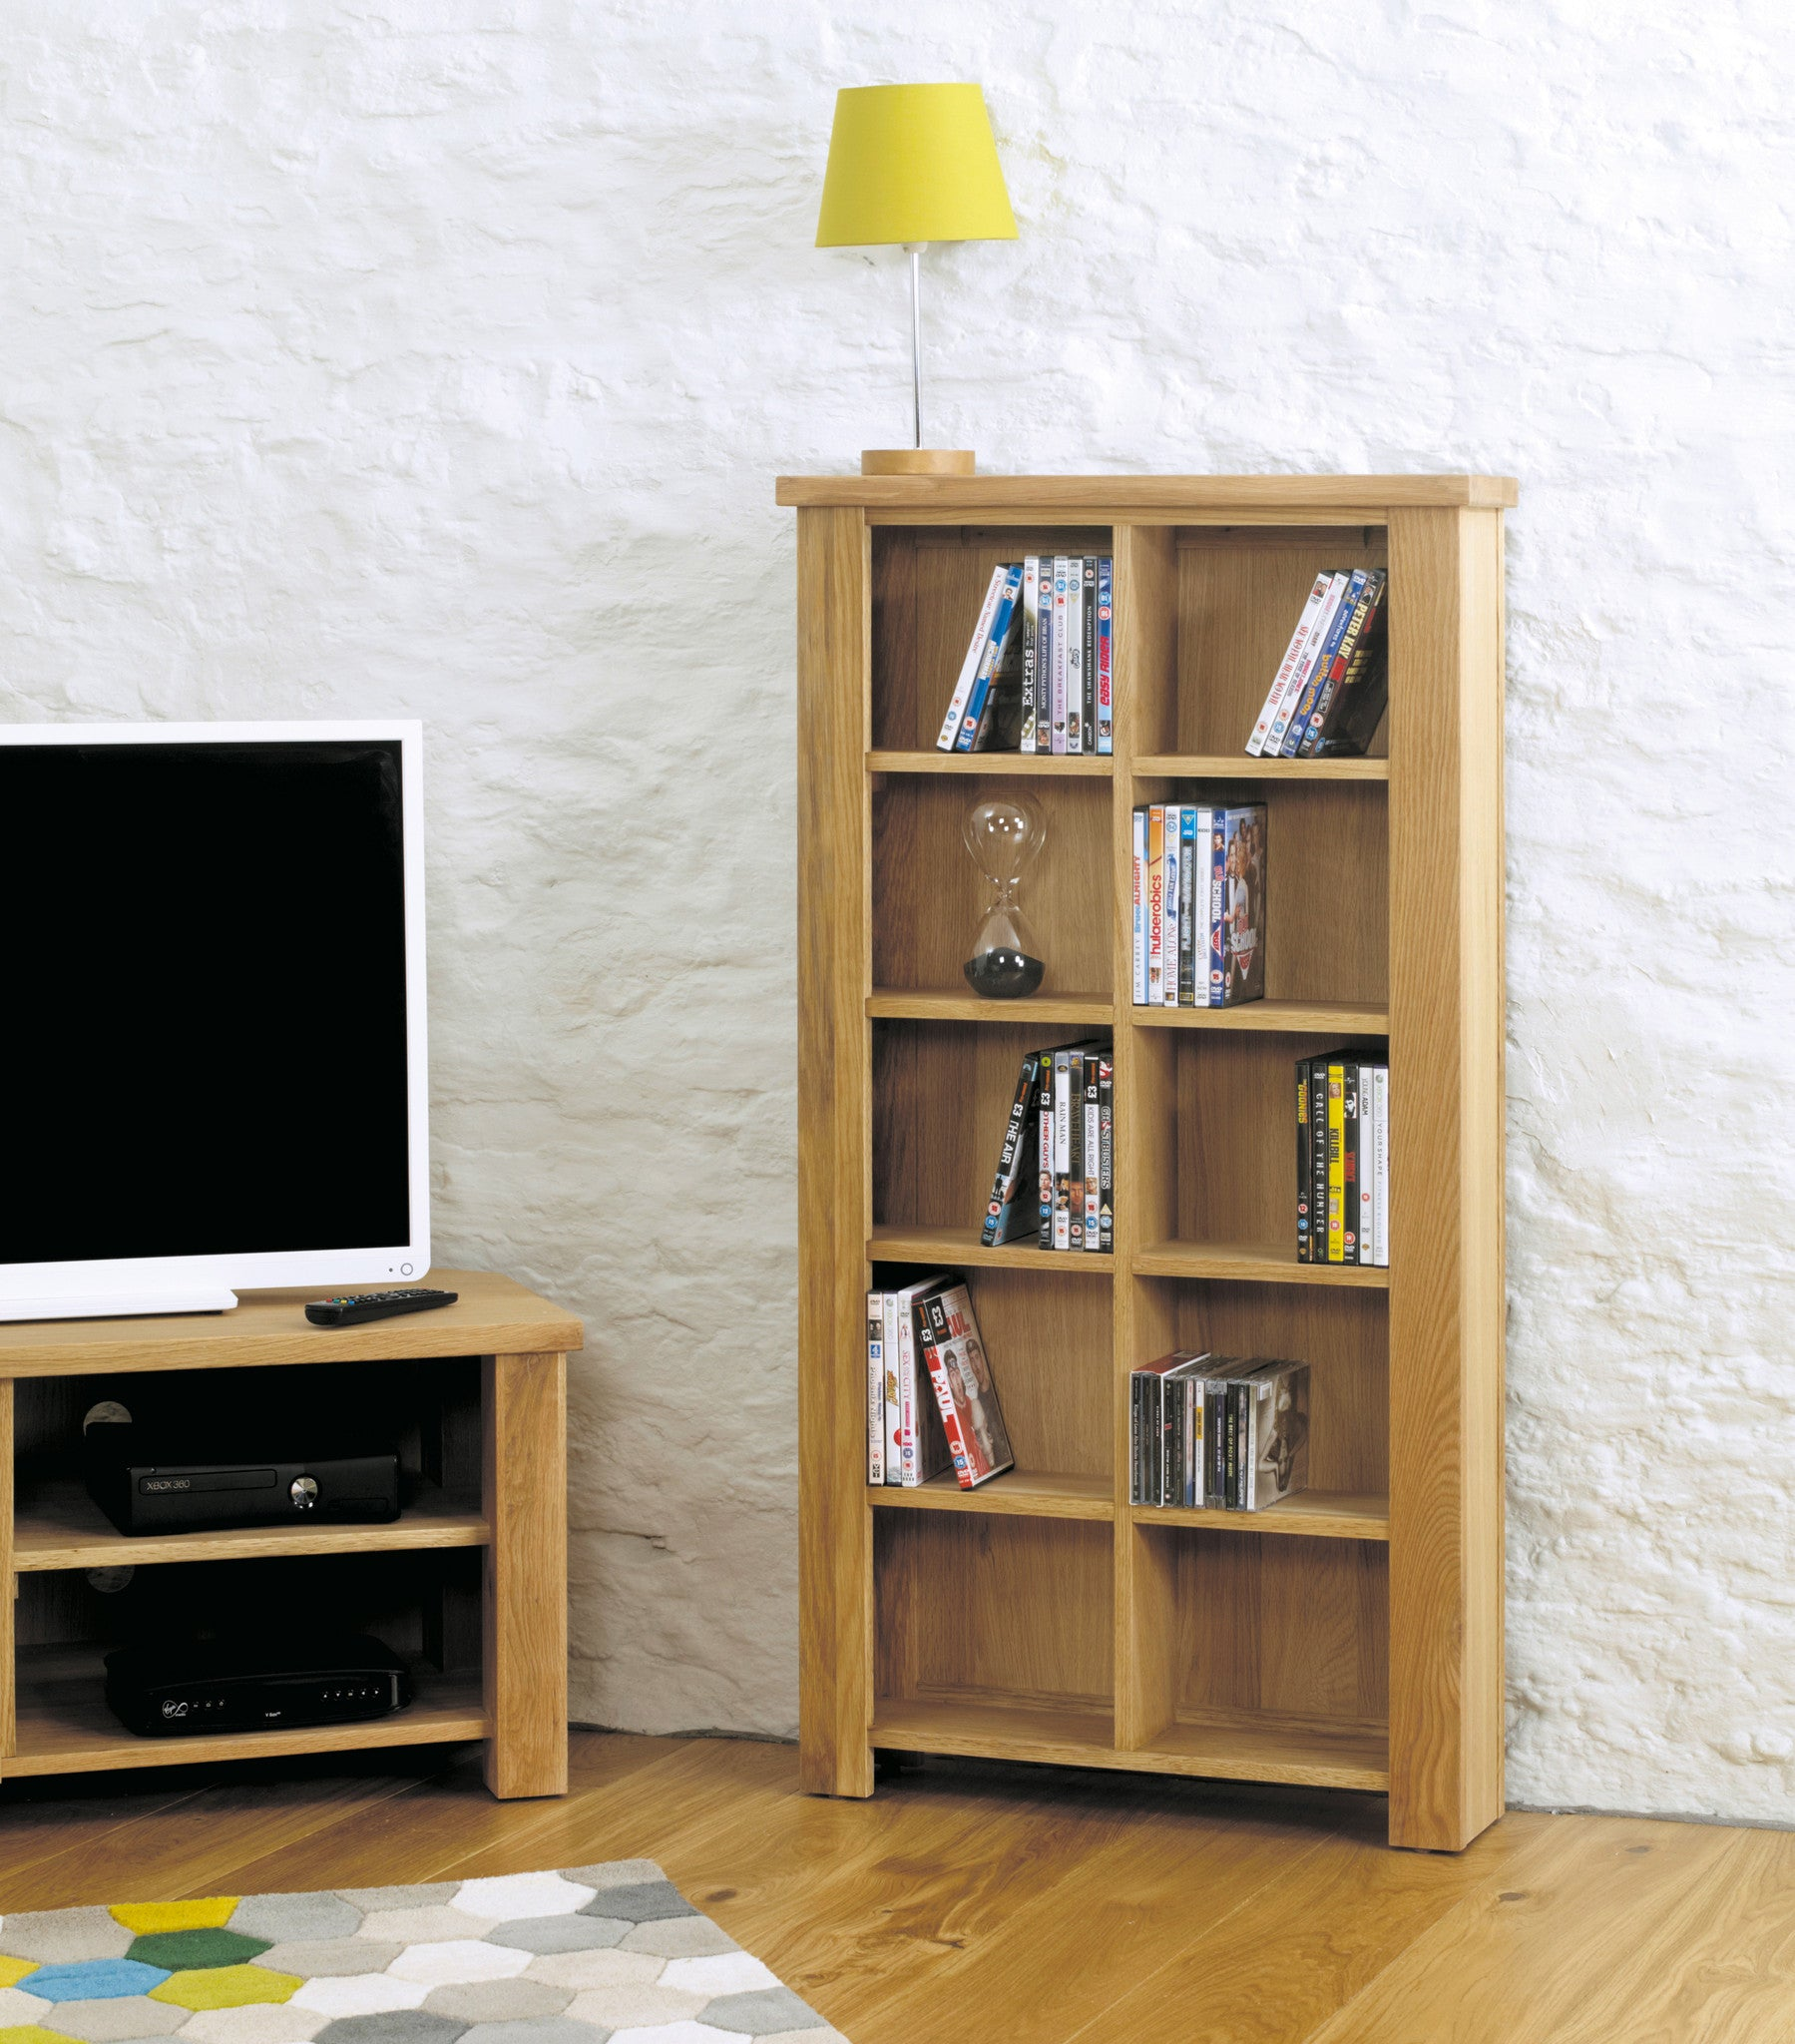 msl open product cabinet oak warwick bookcase dvd slim narrow cd solid lw bookcases cddvd